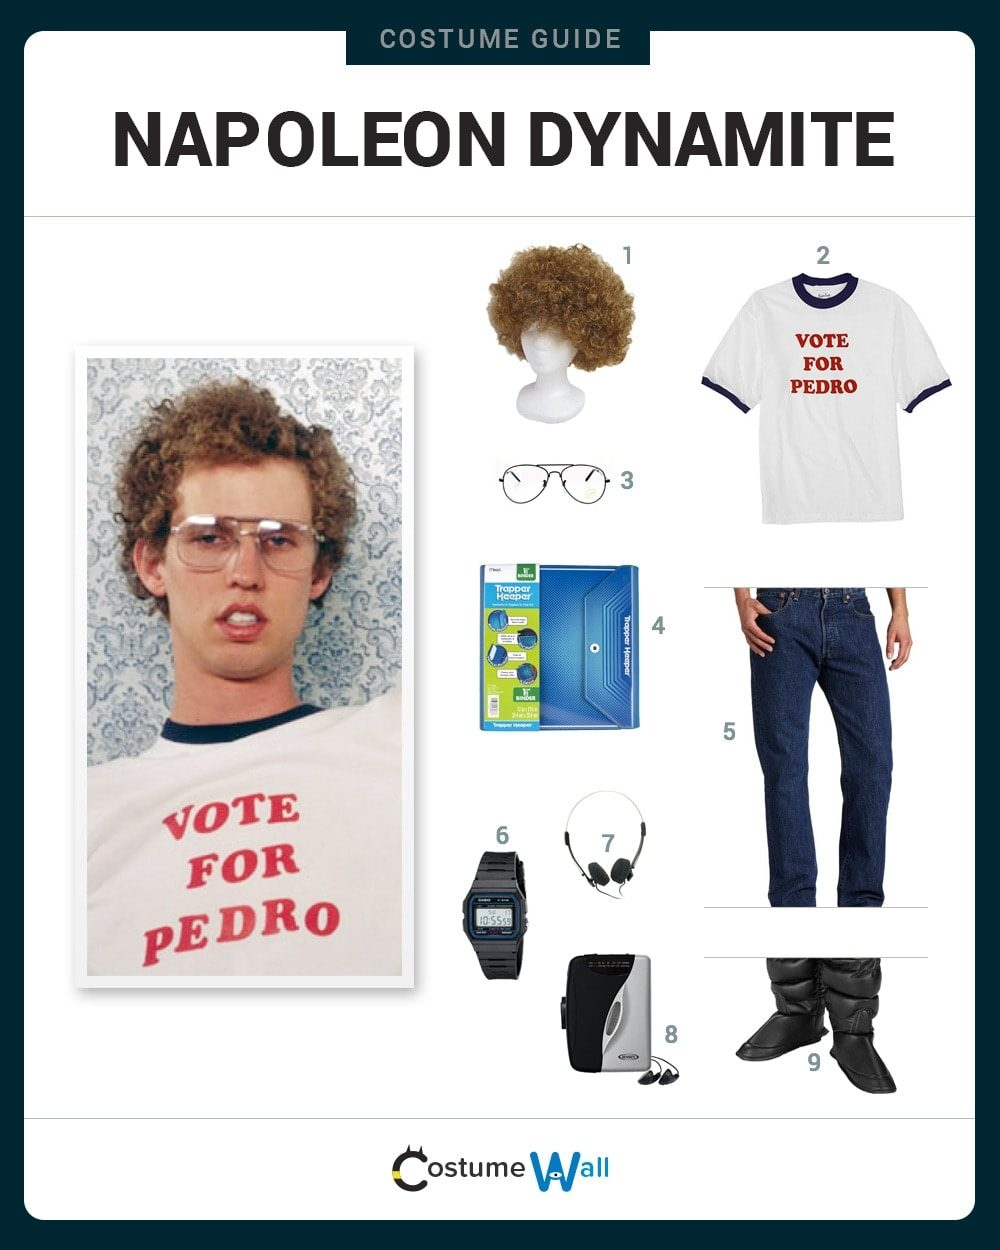 How much did it cost to make napoleon dynamite